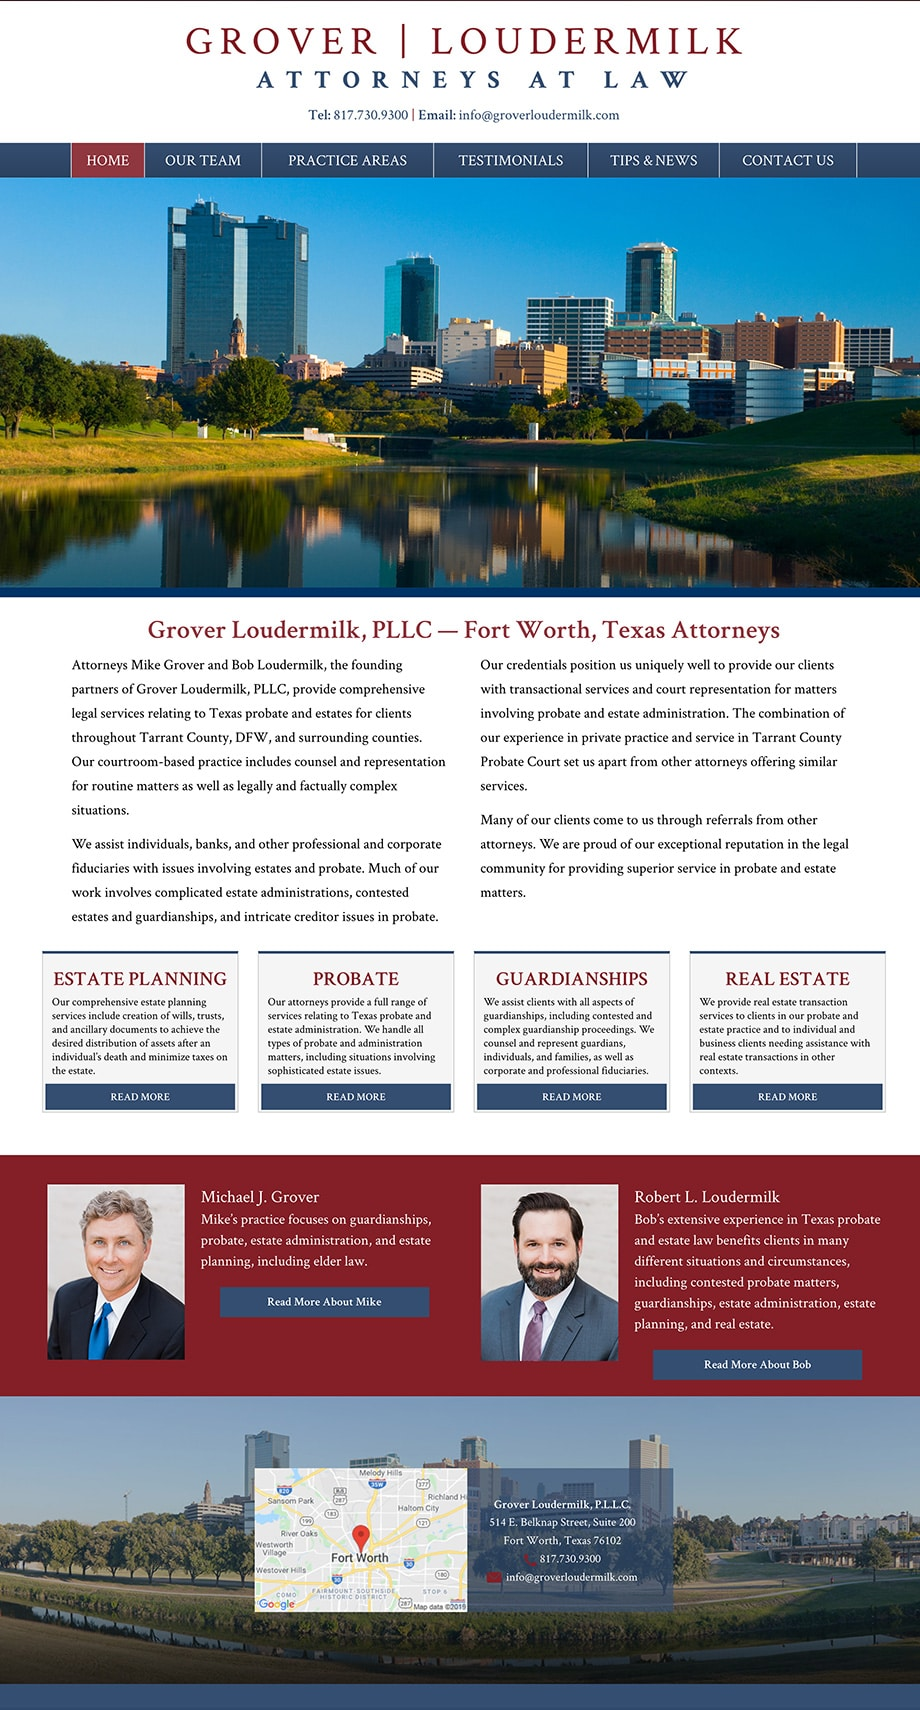 Law Firm Website Design for Grover Loudermilk, P.L.L.C.